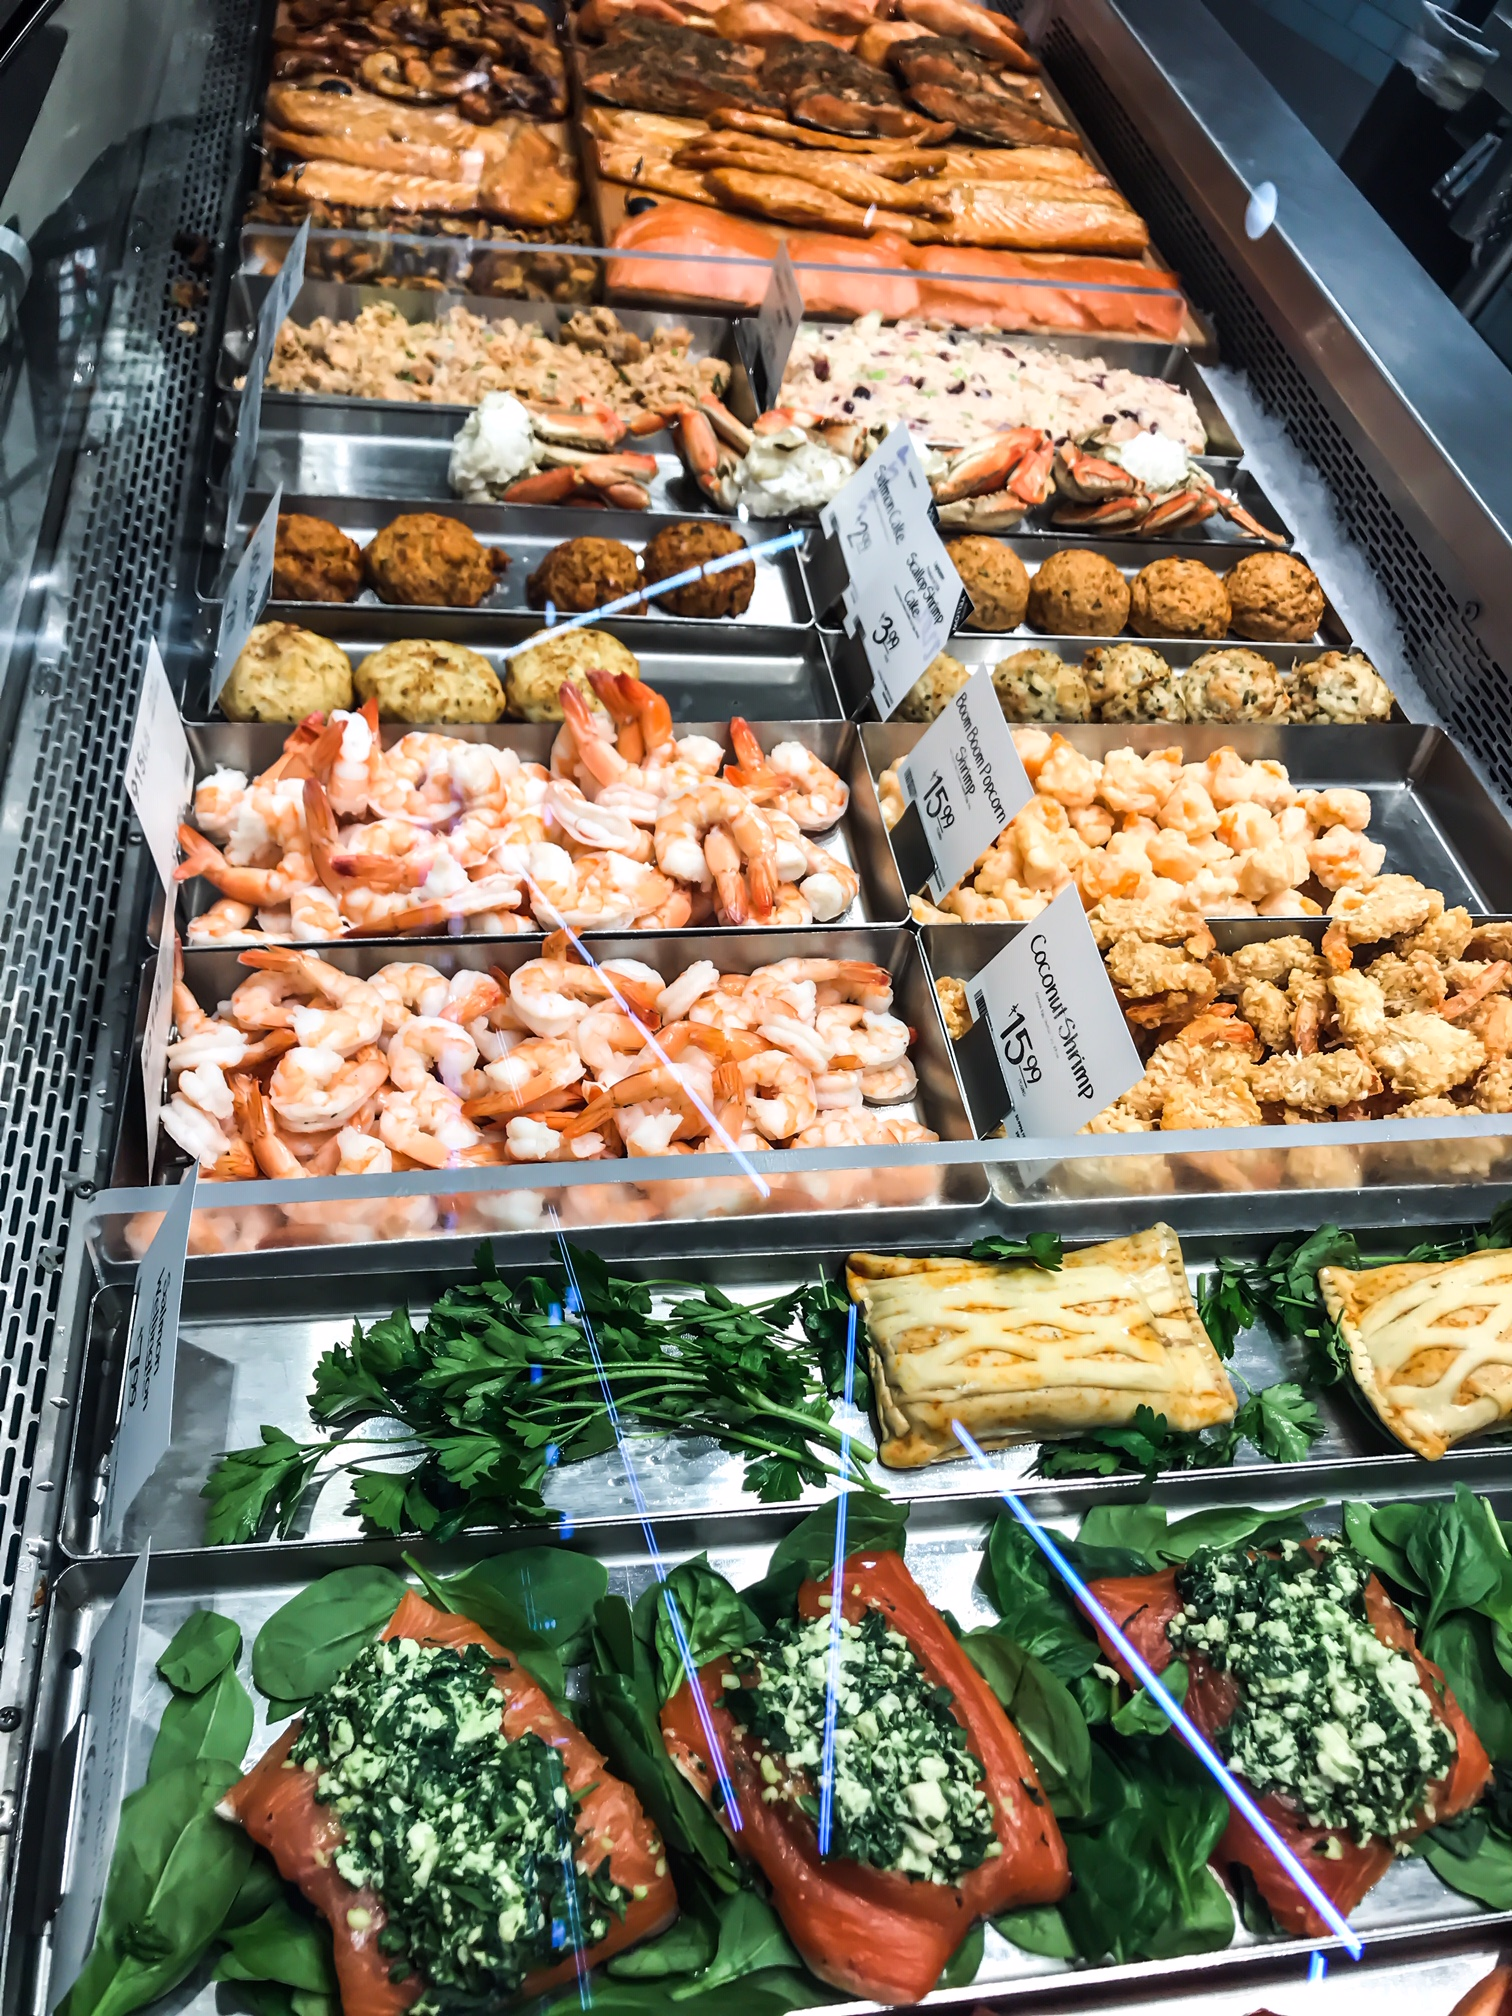 Whole Foods Market Sustainably Caught Seafood. How To Have A Low Key Fancy New Year's Eve At Home With Your Family. New Year's Eve ideas for kids. How to celebrate the new year at home. New Year's Eve With Kids. Shopping at Whole Foods Market For The Holidays. #sponsored #MakesMeWhole #LowKeyNYE #Whole #Foods